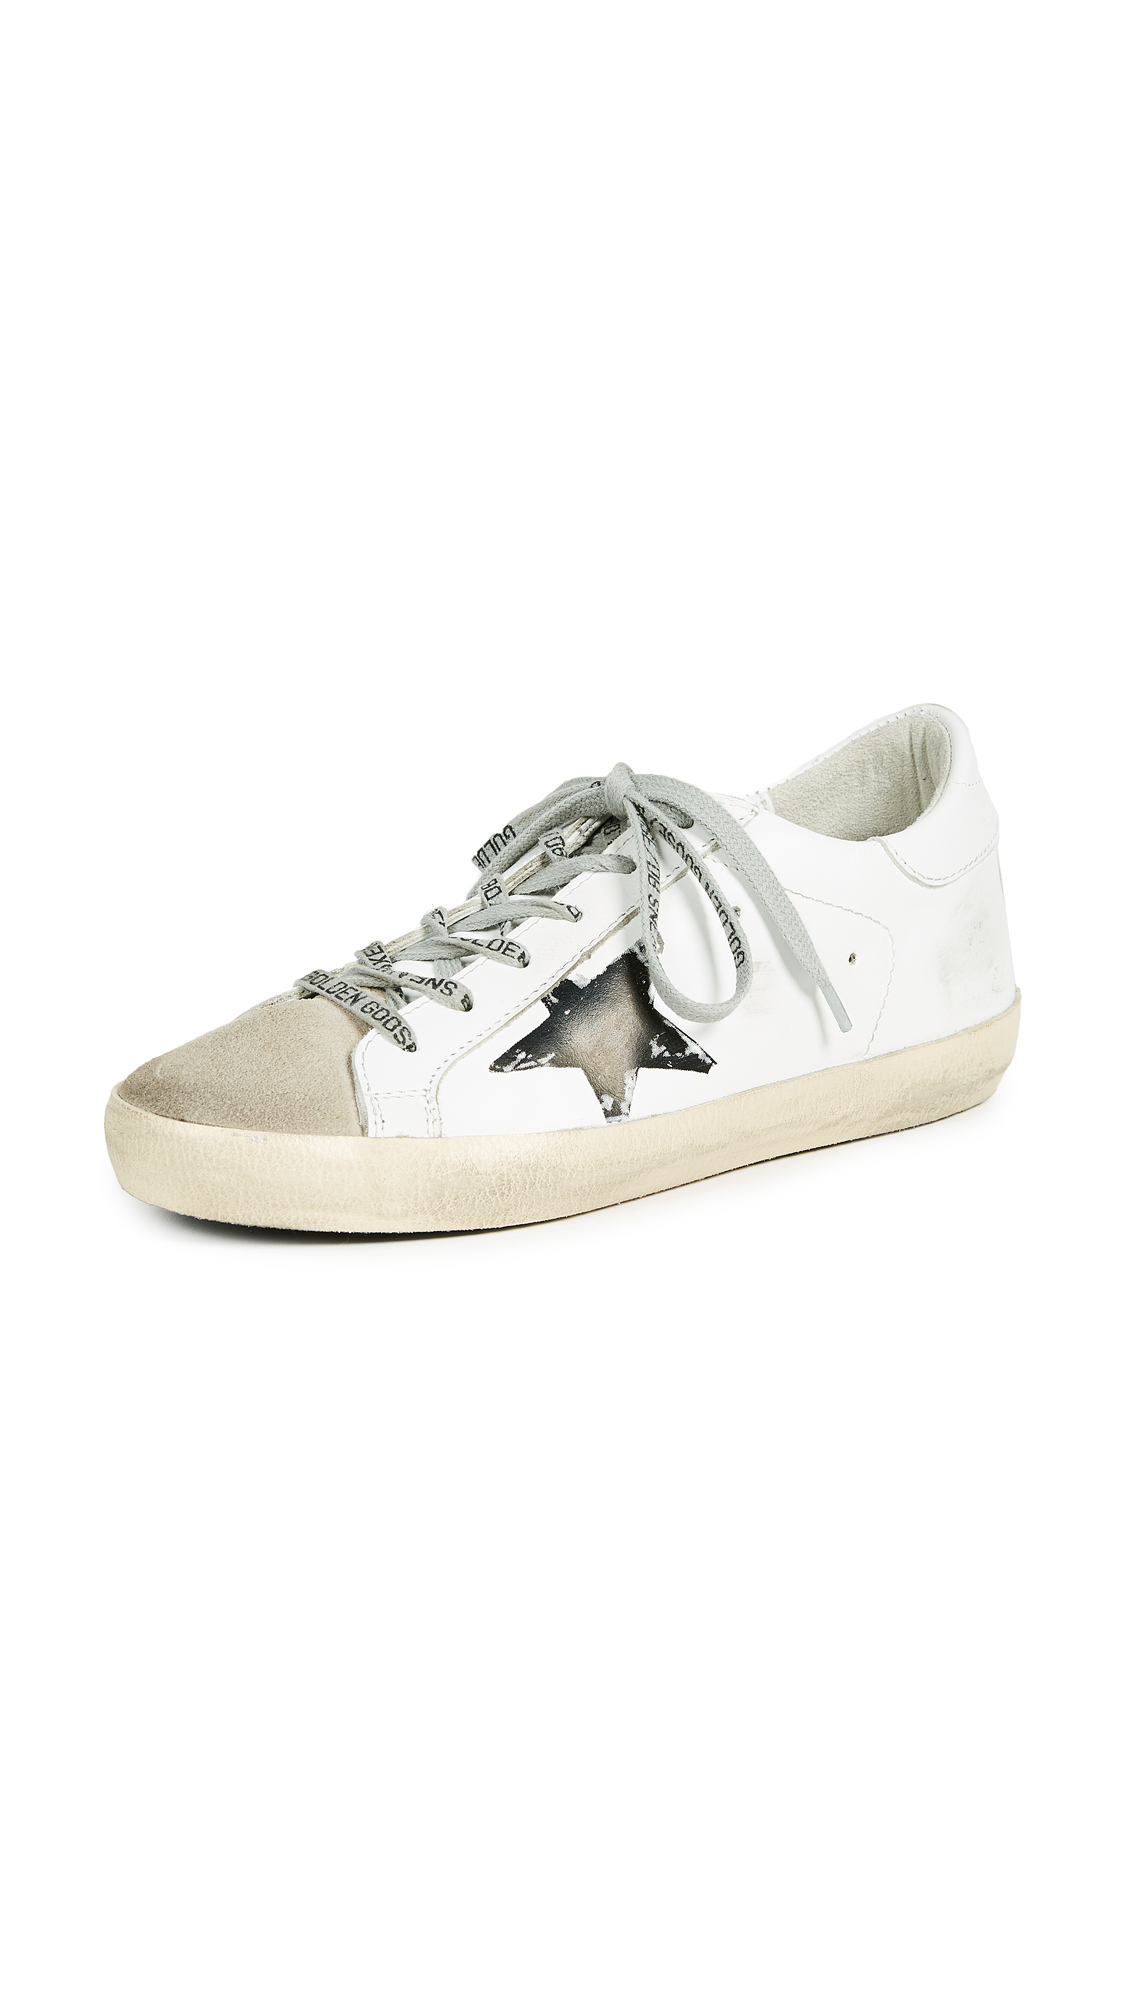 Golden Goose Superstar Sneakers - White Flag